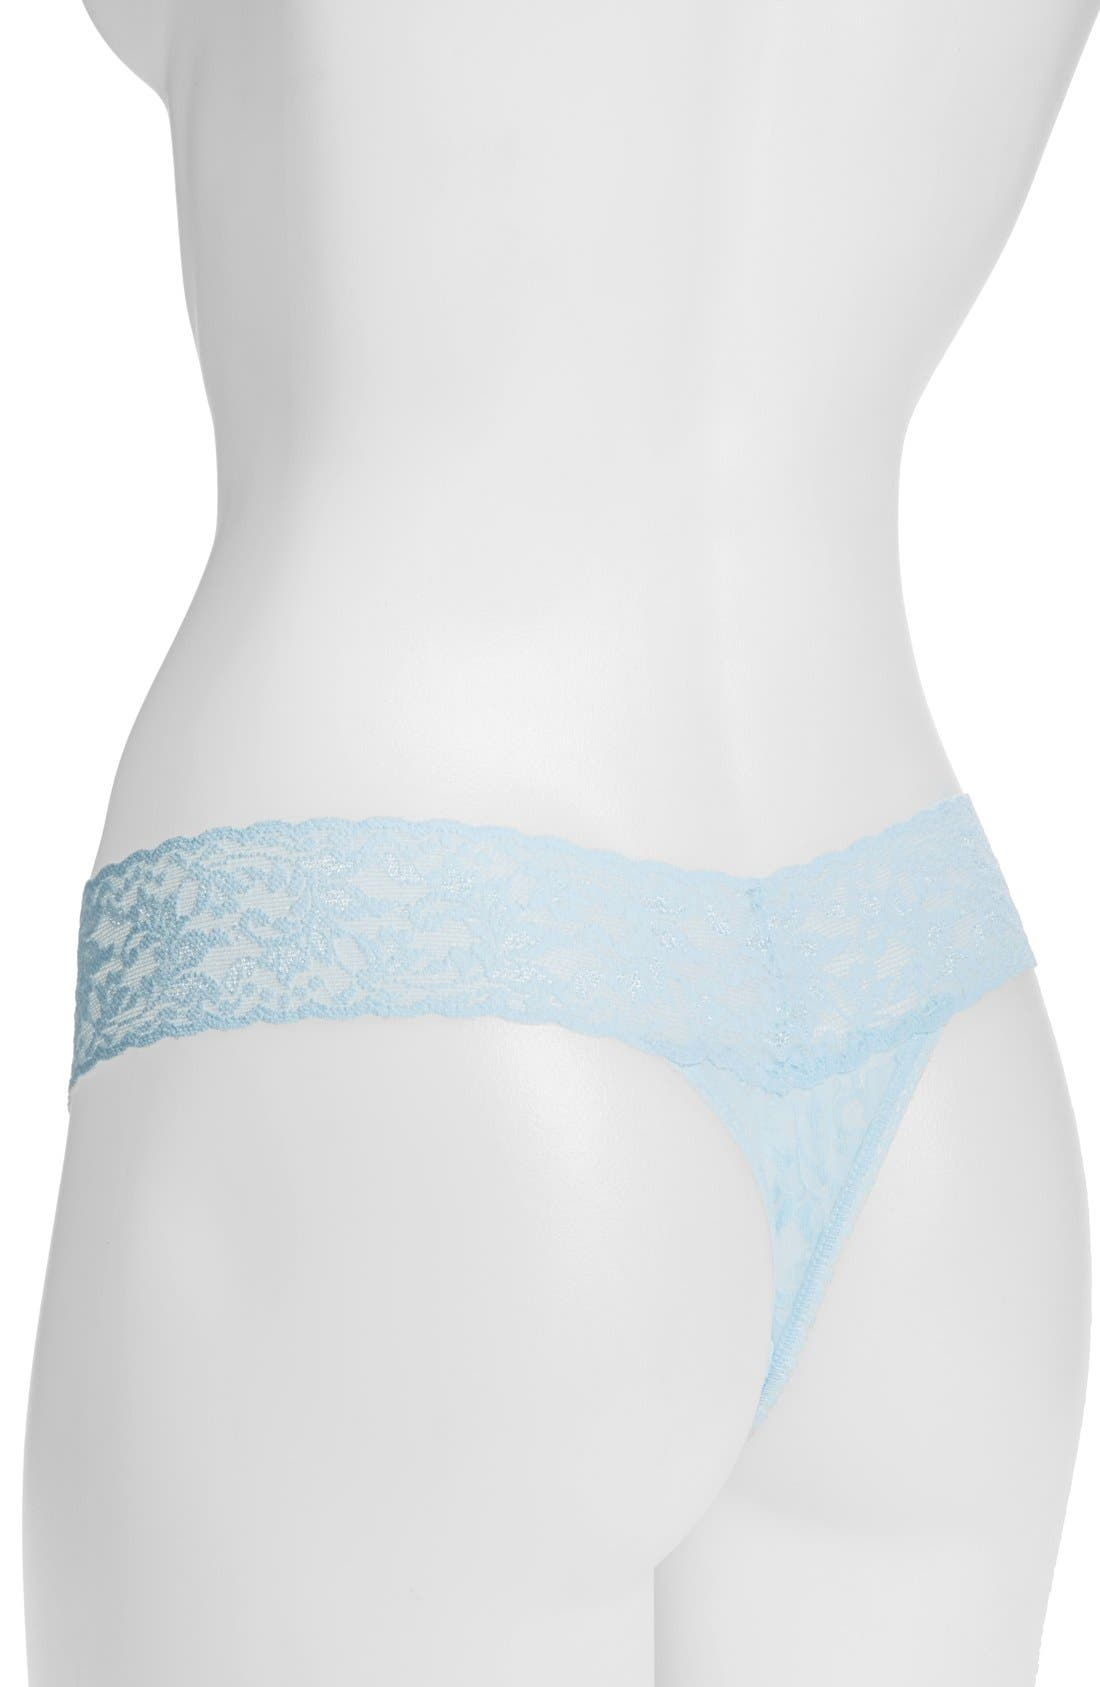 Alternate Image 3  - Hanky Panky 'I Do' Swarovski Crystal Low Rise Thong